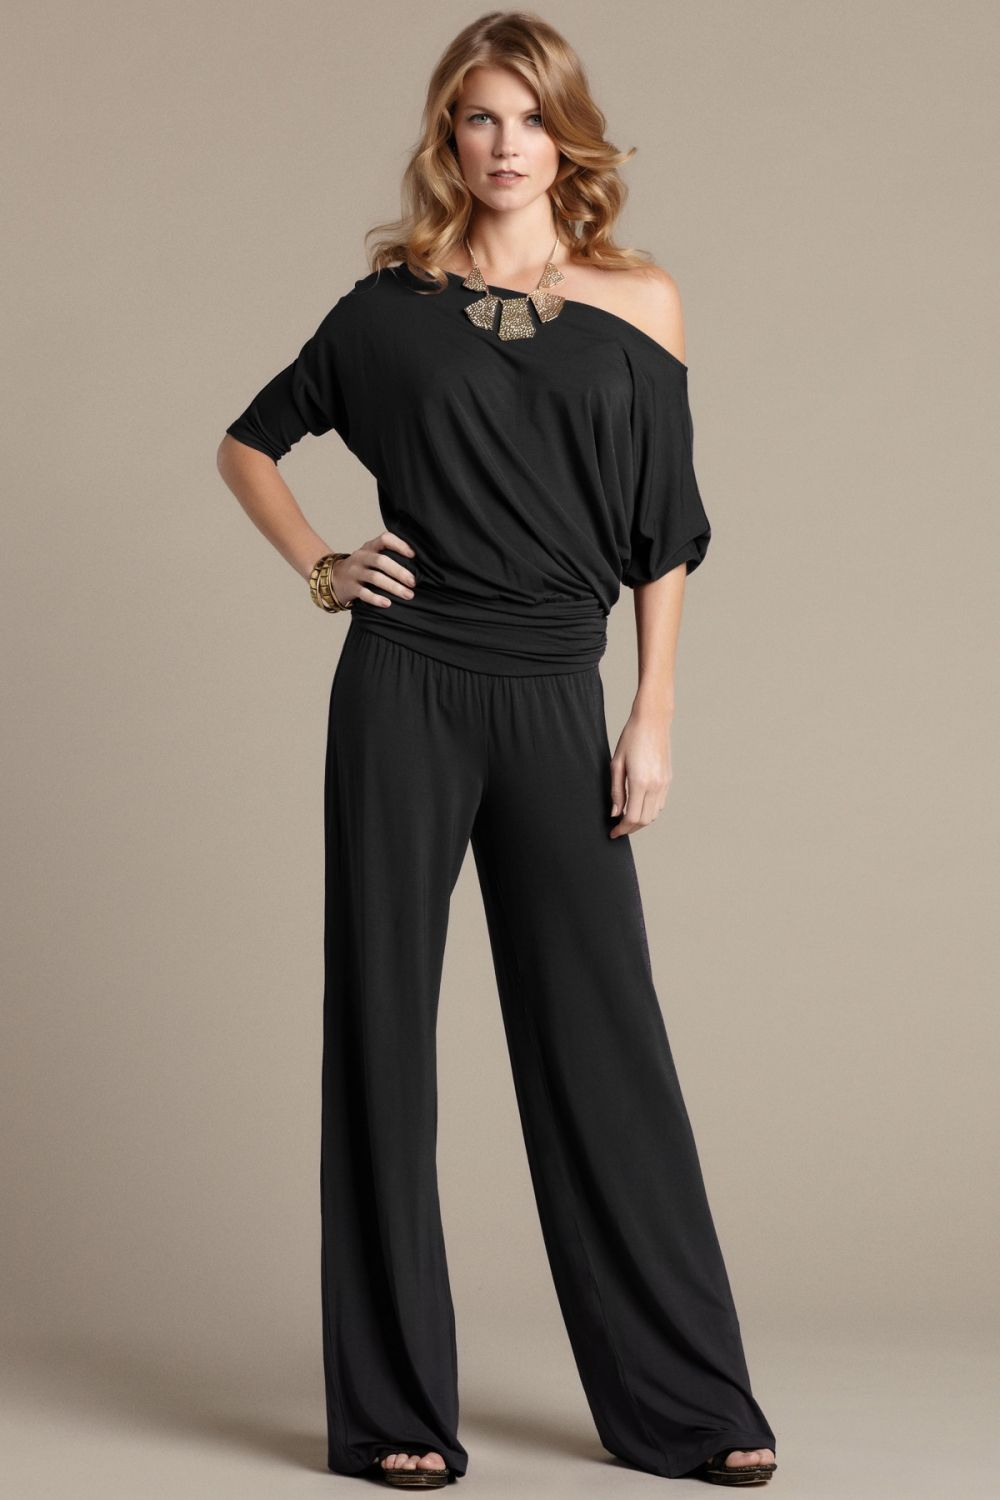 Michelle Jumper - Black - AED840 from Hunni Online www.hunnionline.com/shop/Clothing/Jumpsuits/Michelle-Jumper-Black/